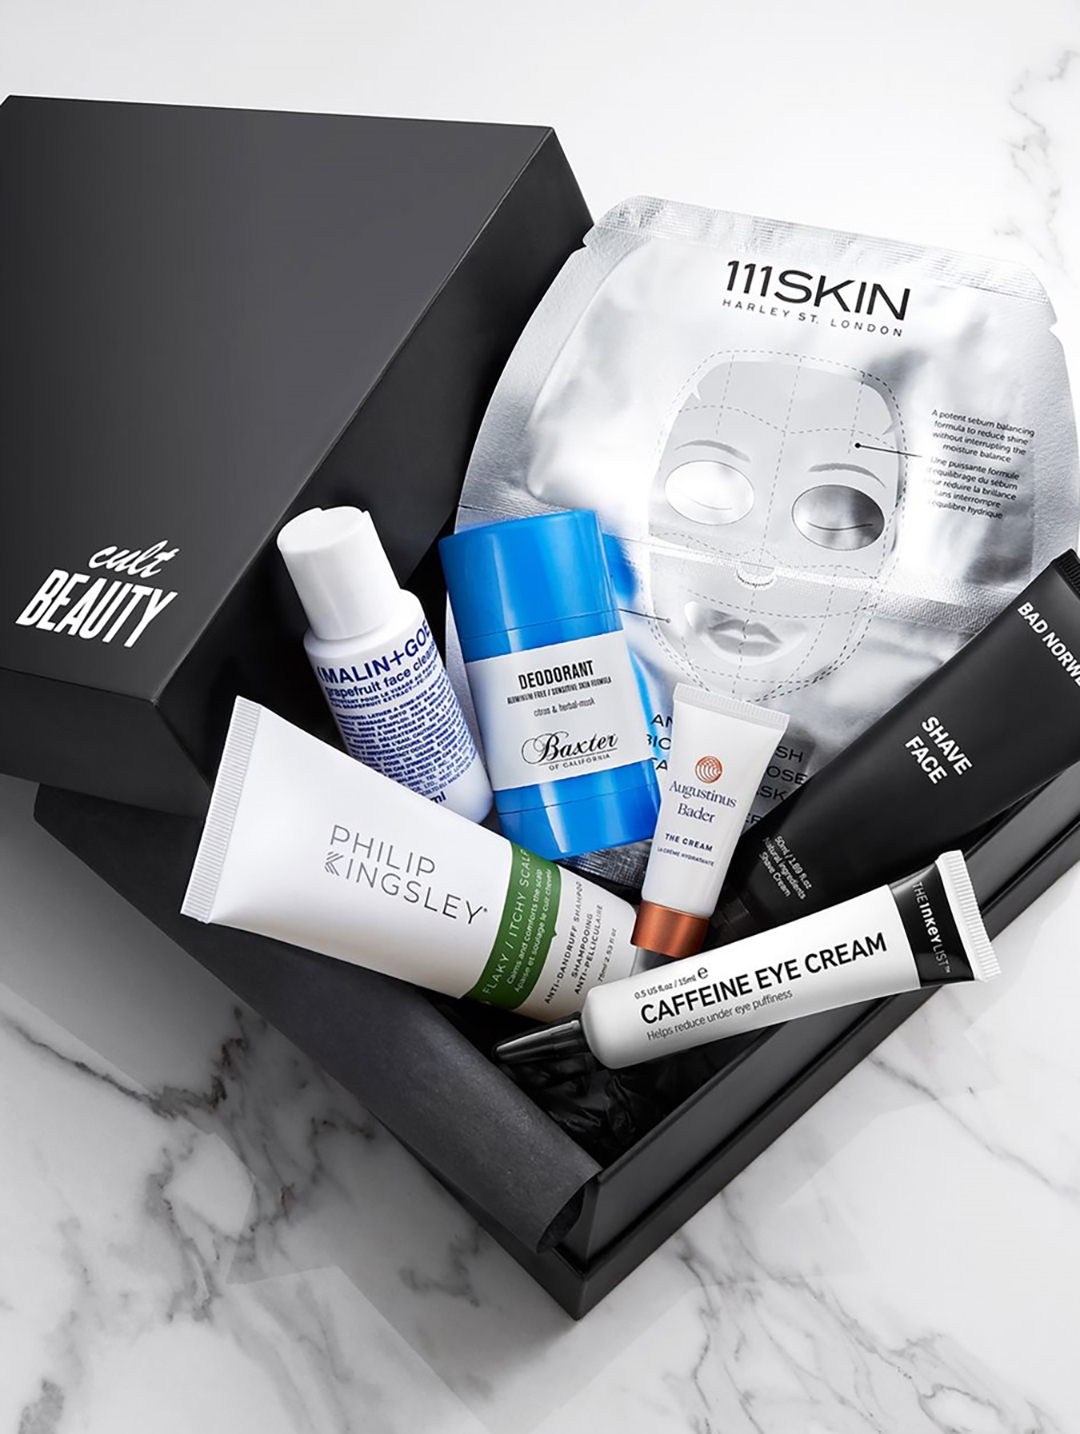 How Retail Packaging Can Differentiate Your Men's Grooming Brand